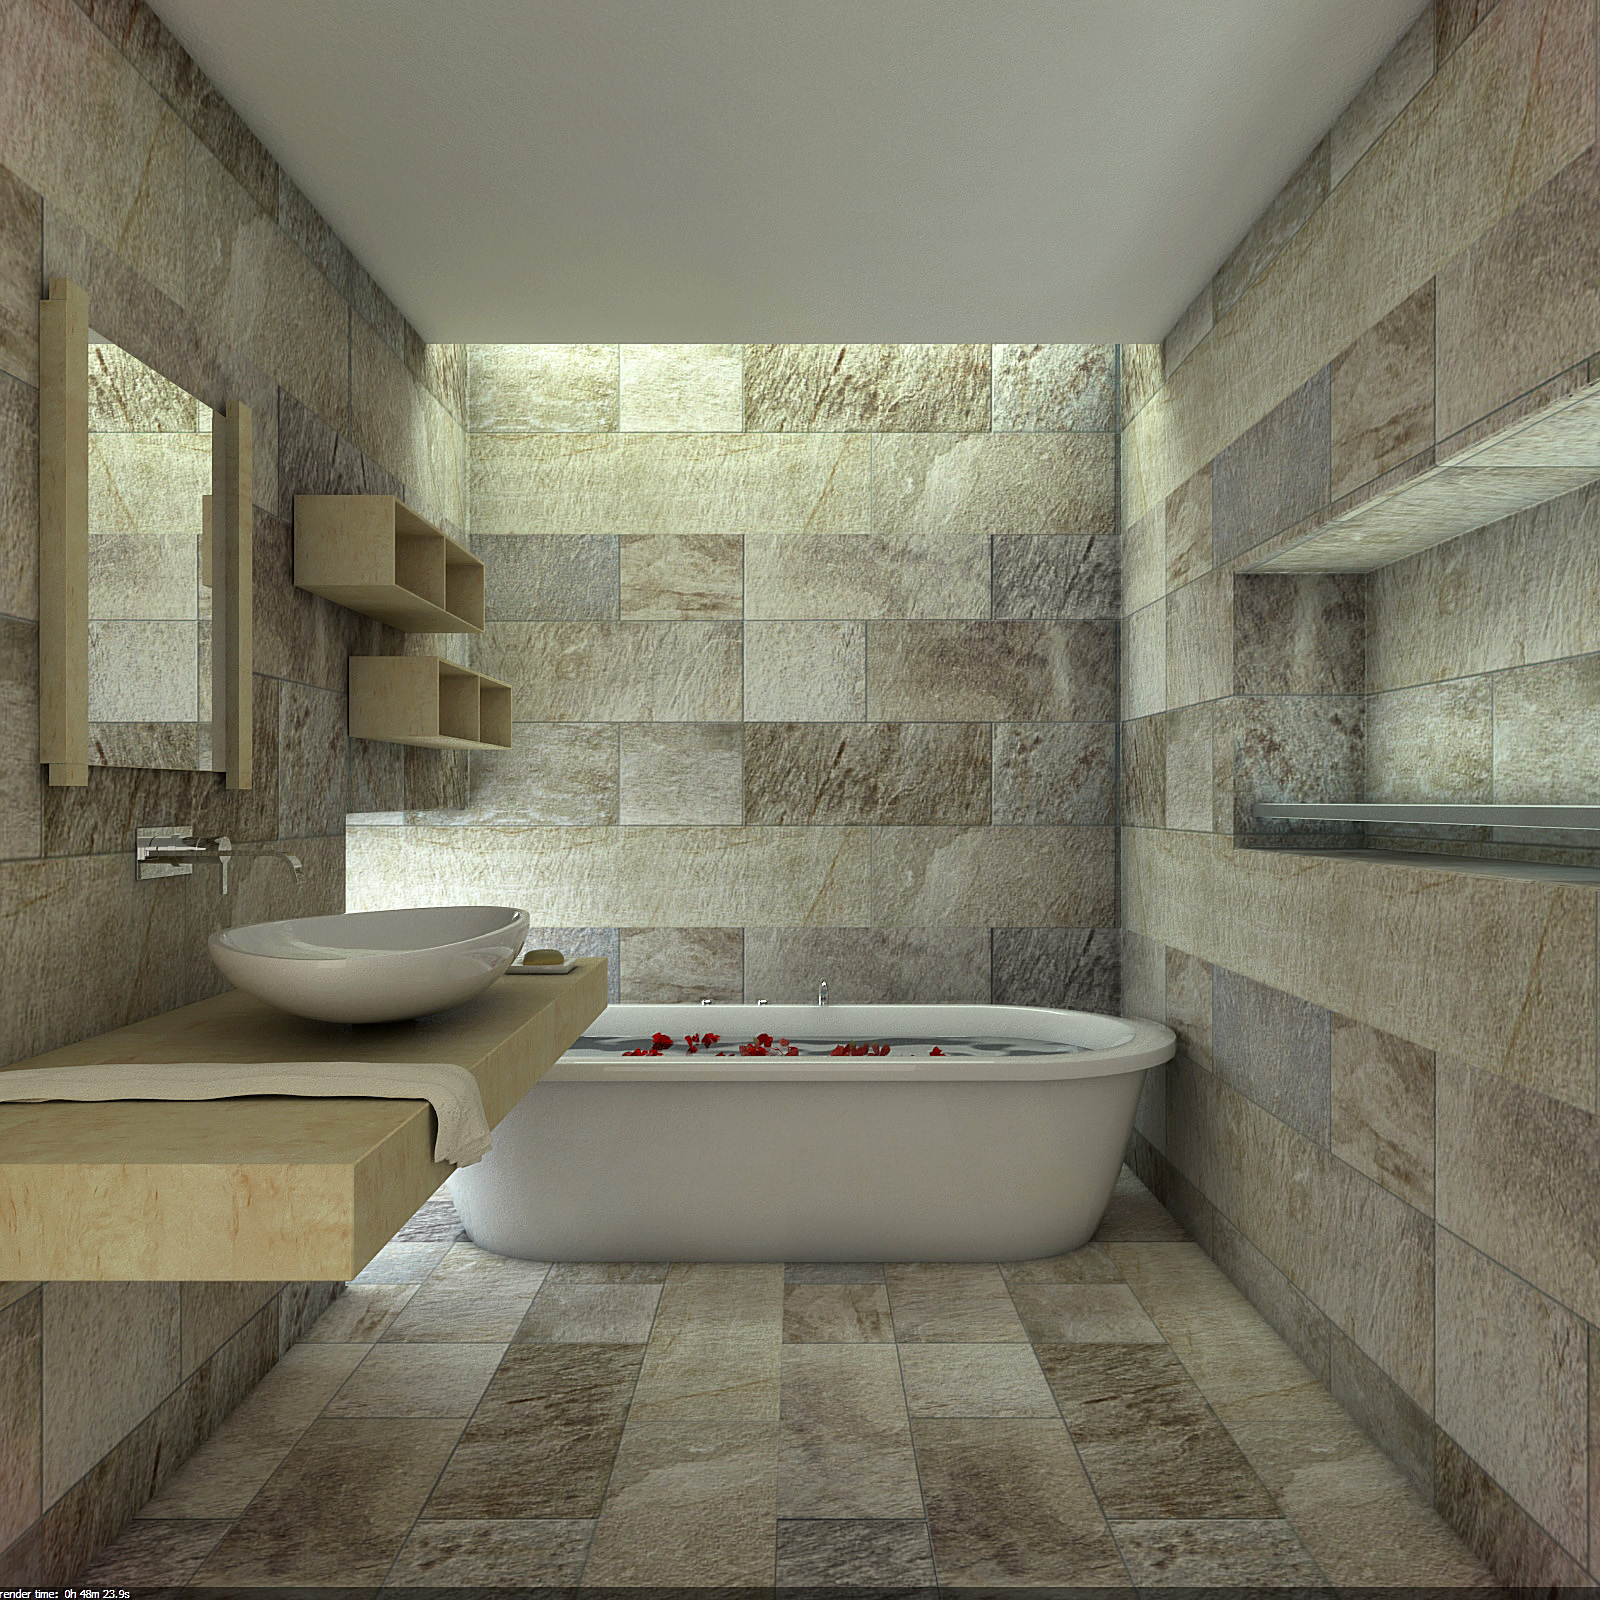 Stone Tile Bathrooms: Natural Stone Bathroom By Overstone On DeviantArt